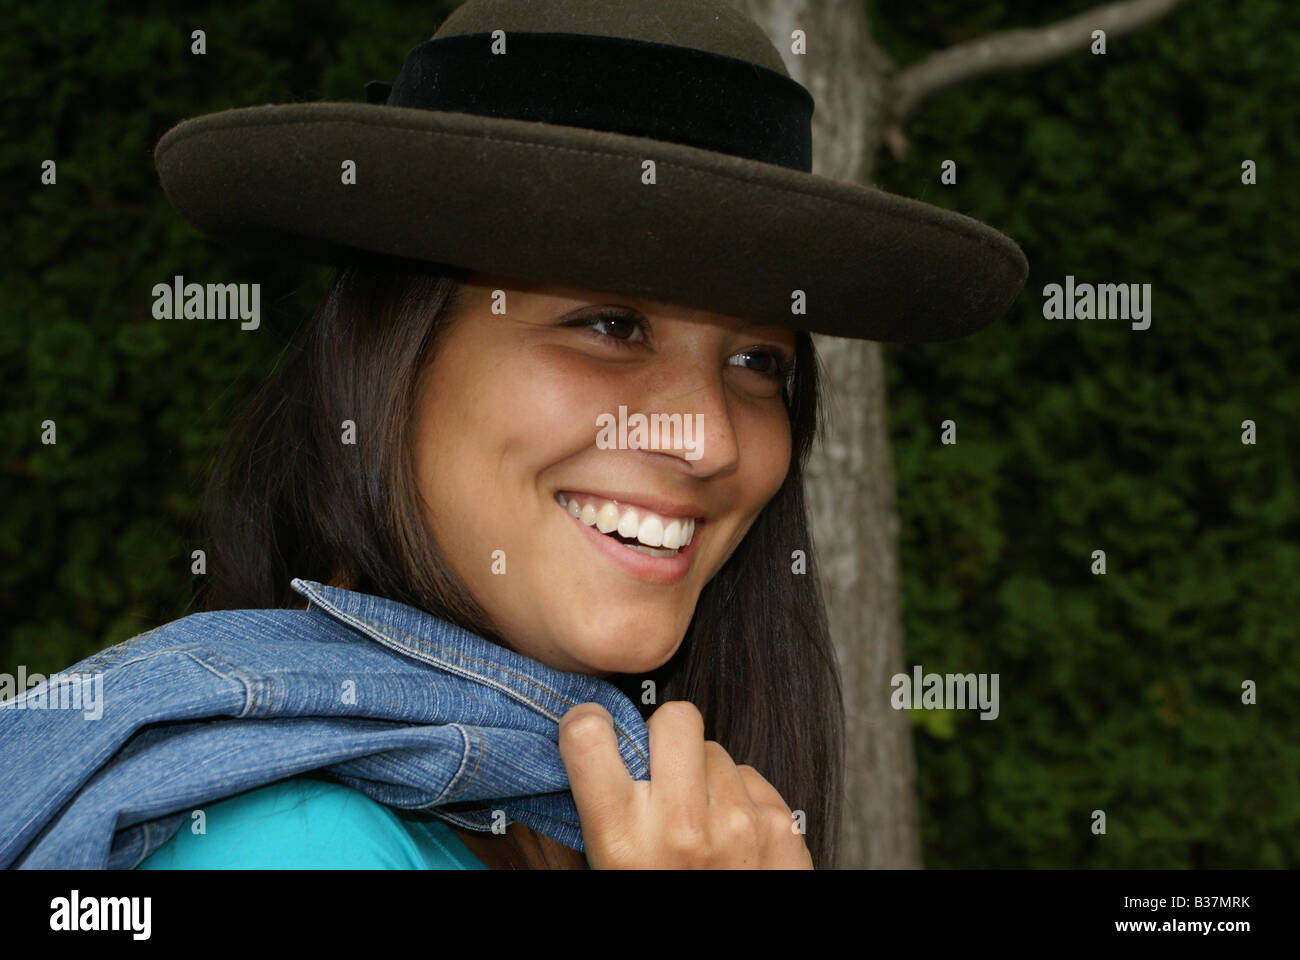 5228ffe7d American/Japanese teenager posing with hat and jean jacket outside - Stock  Image